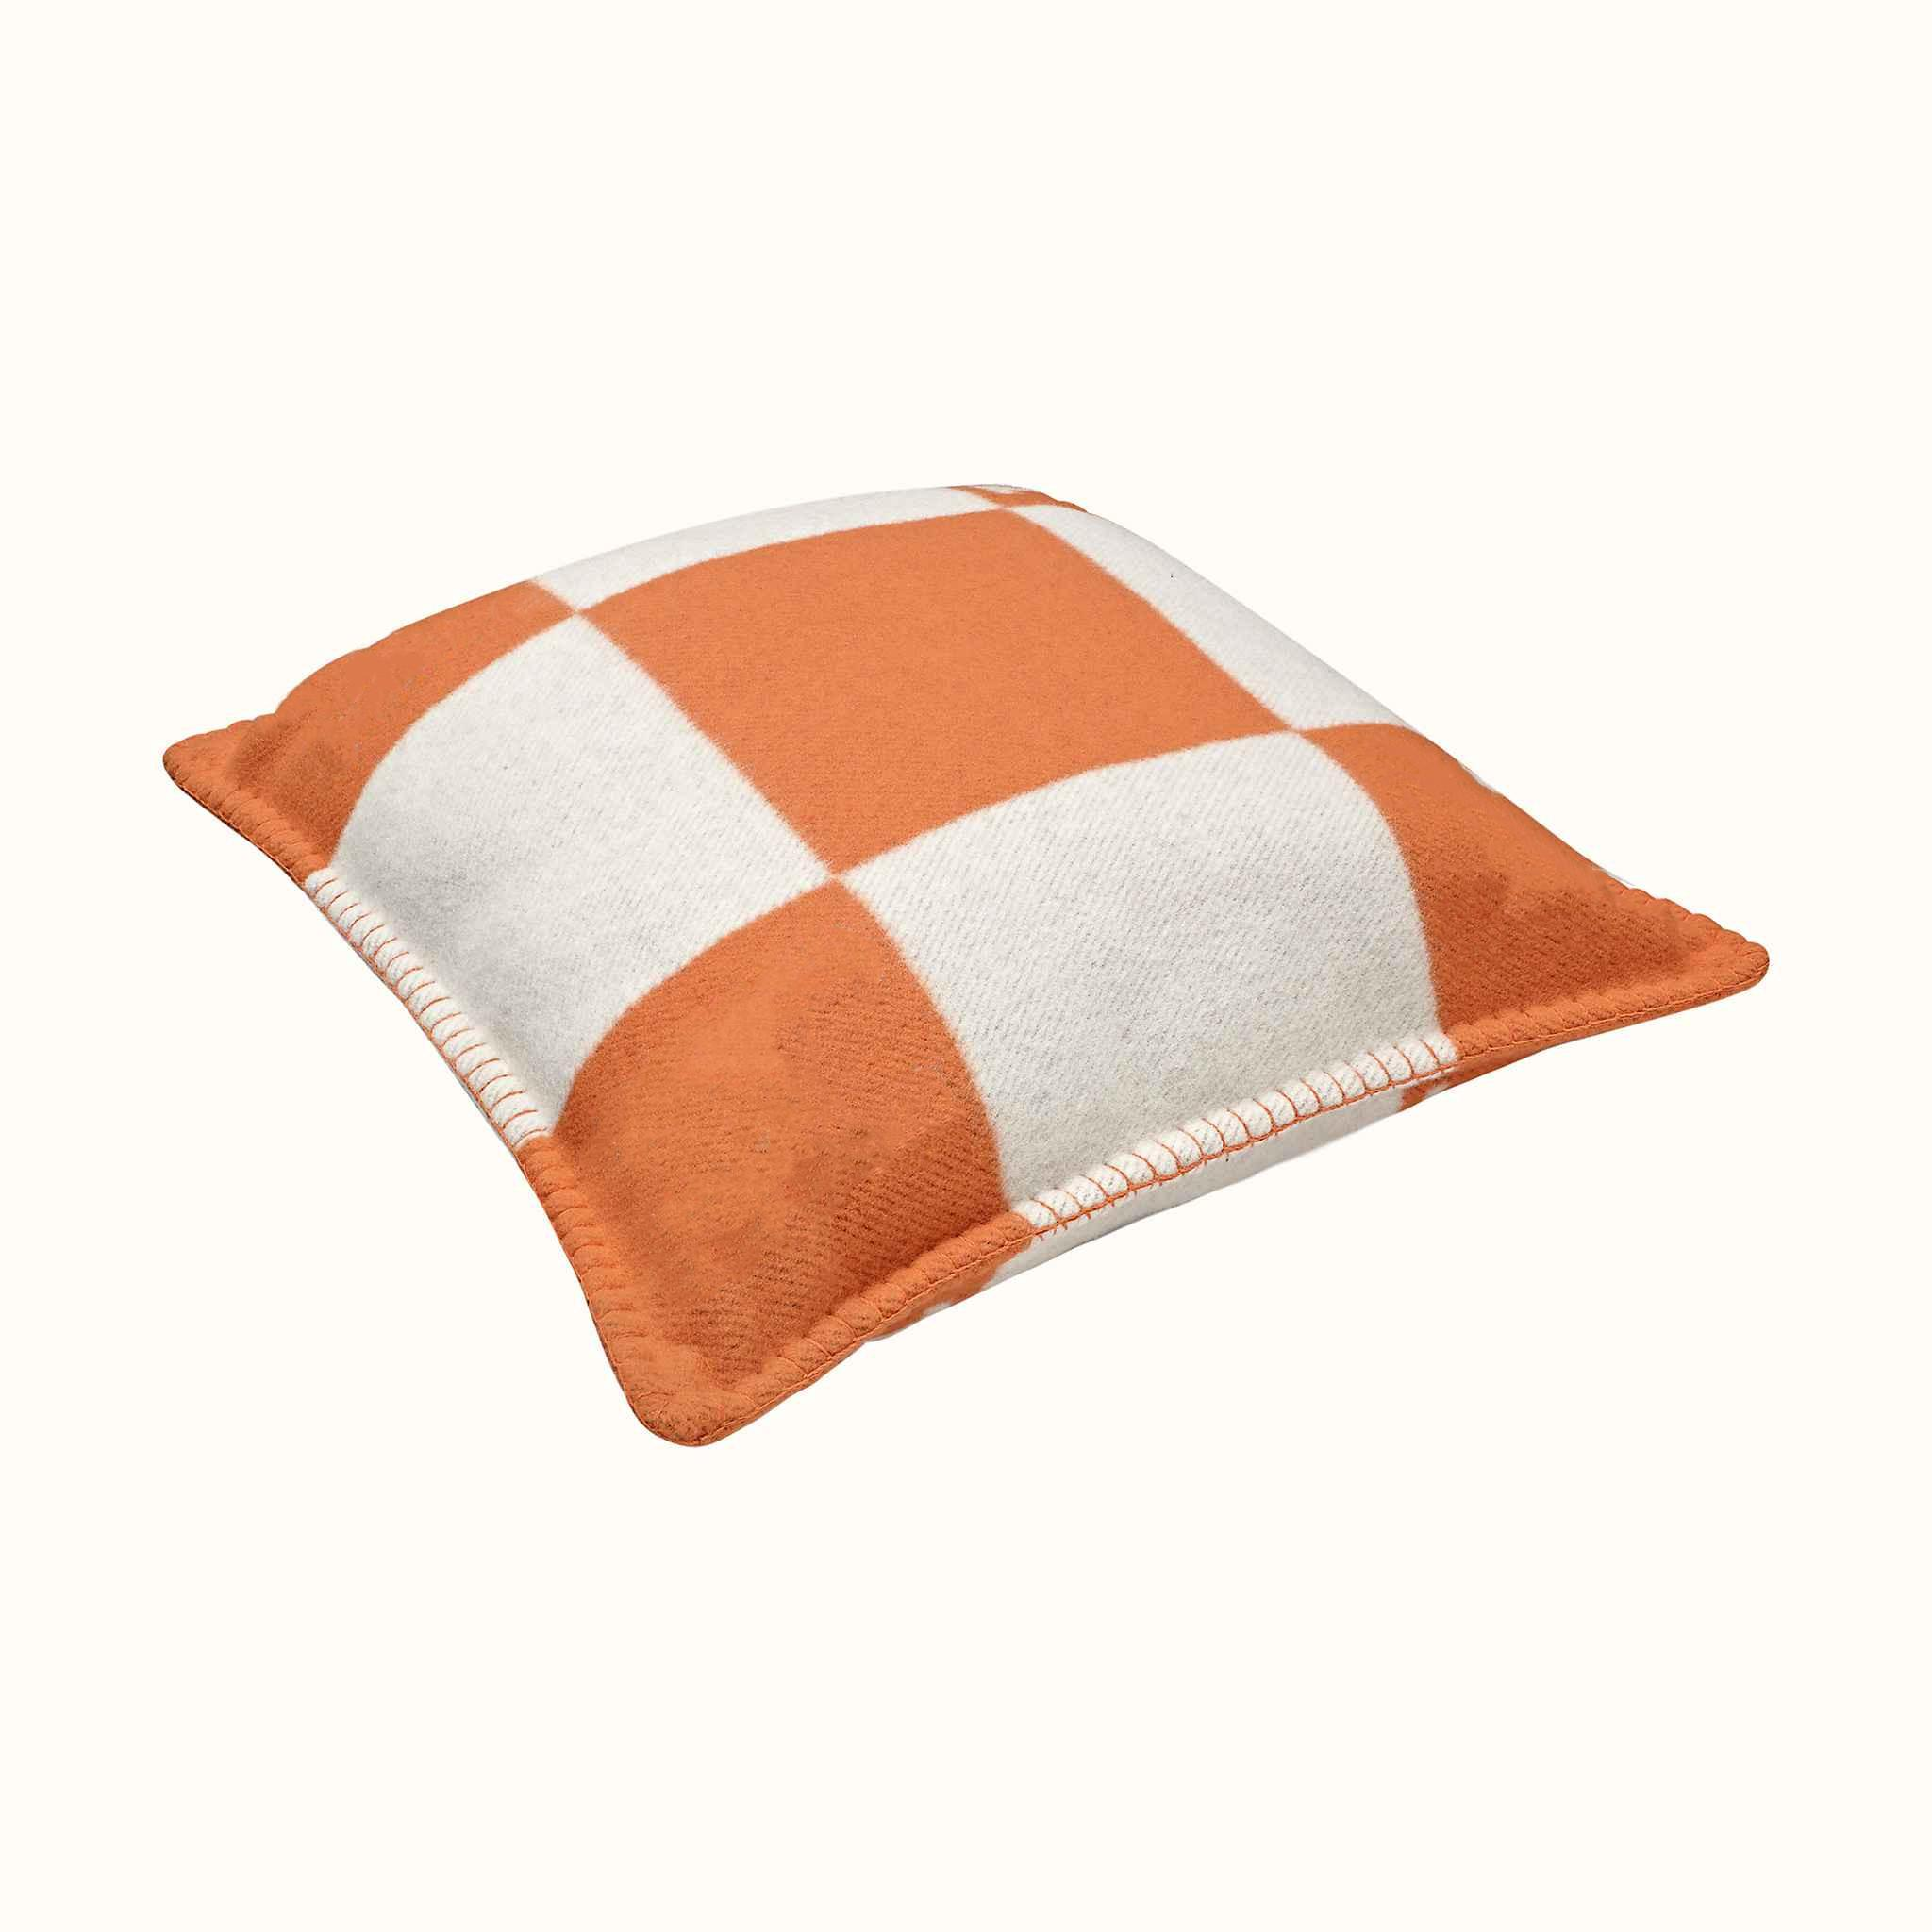 Plaid H Cashmere Soft Home Decor Bed <font><b>Body</b></font> with Blanket